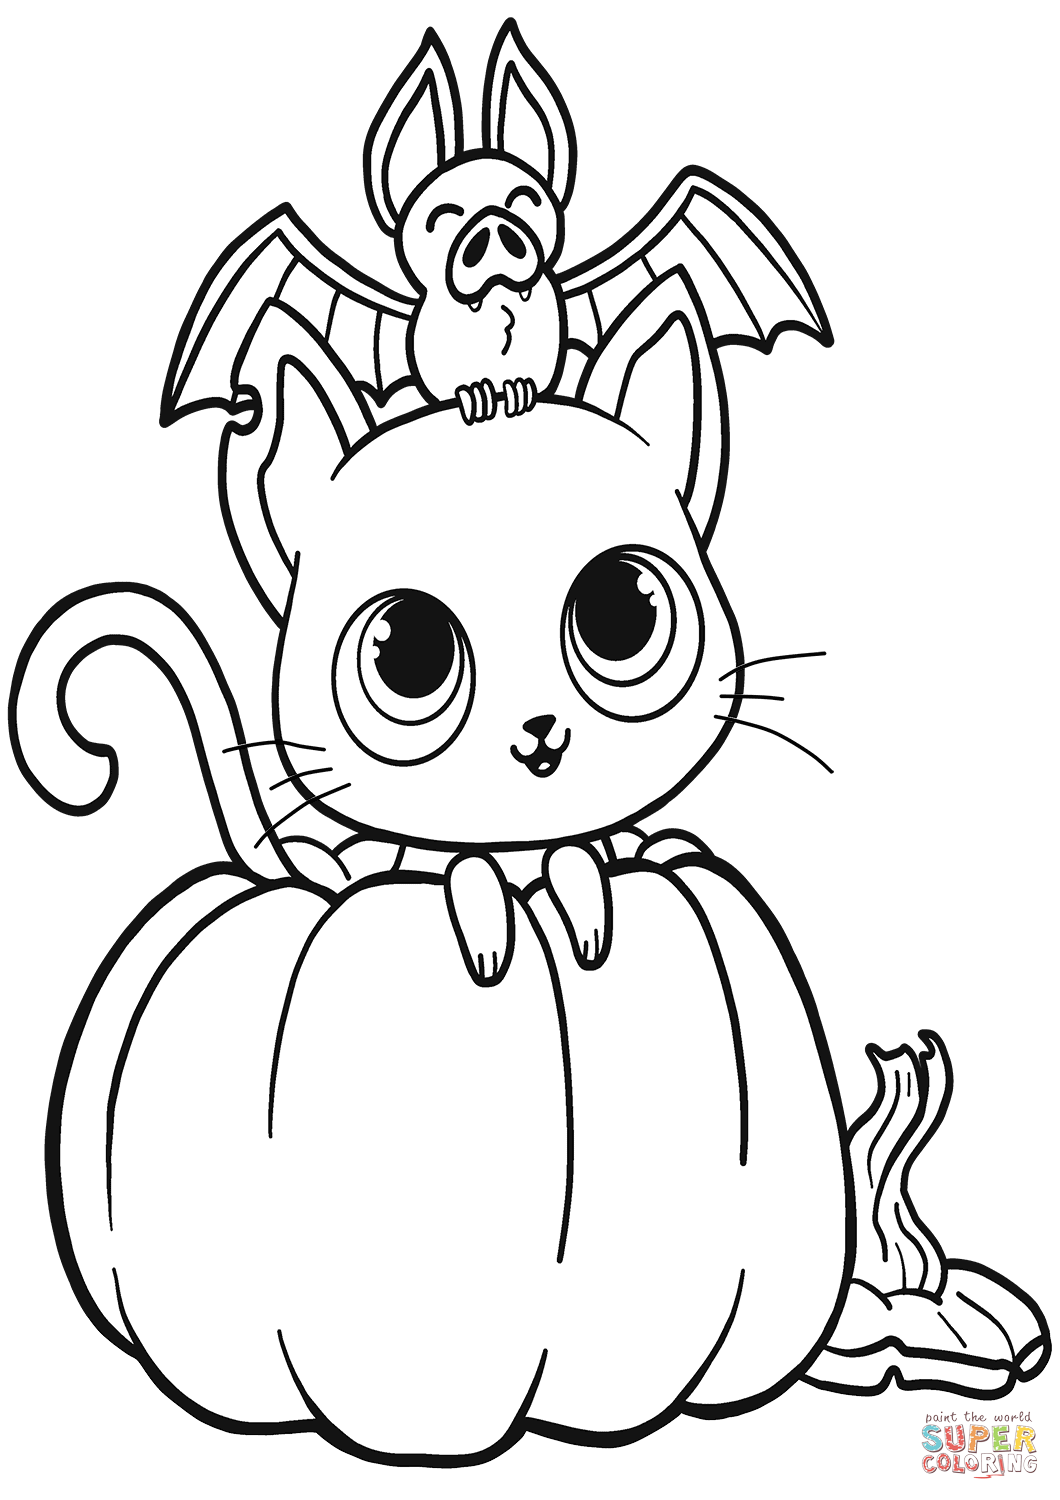 Bat Cat And Pumpkin Coloring Page Free Printable Coloring Pages Halloween Coloring Pages Printable Halloween Coloring Pages Pumpkin Coloring Pages